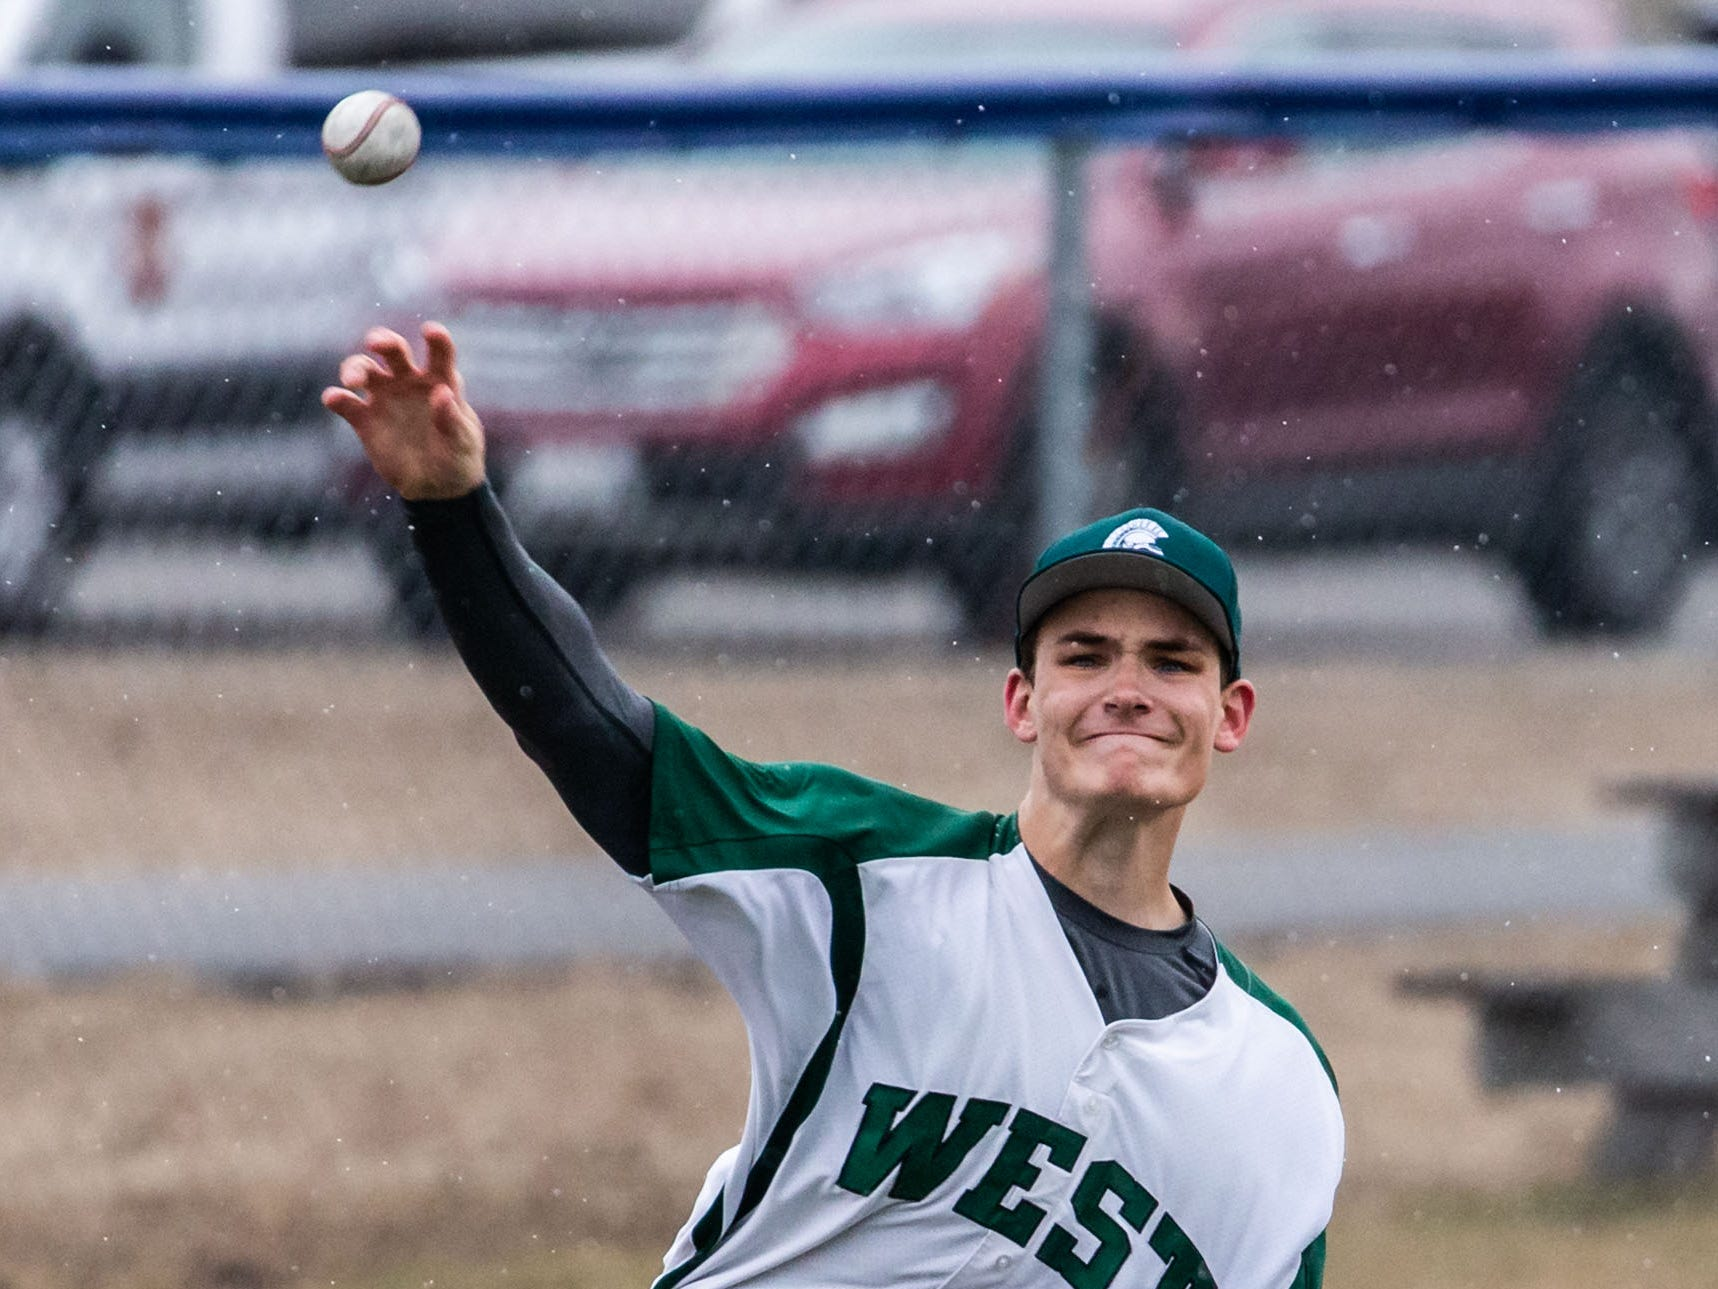 Wauwatosa West third baseman James Lee (2) fires a throw to first during the game at Brookfield Central on Thursday, April 4, 2019.